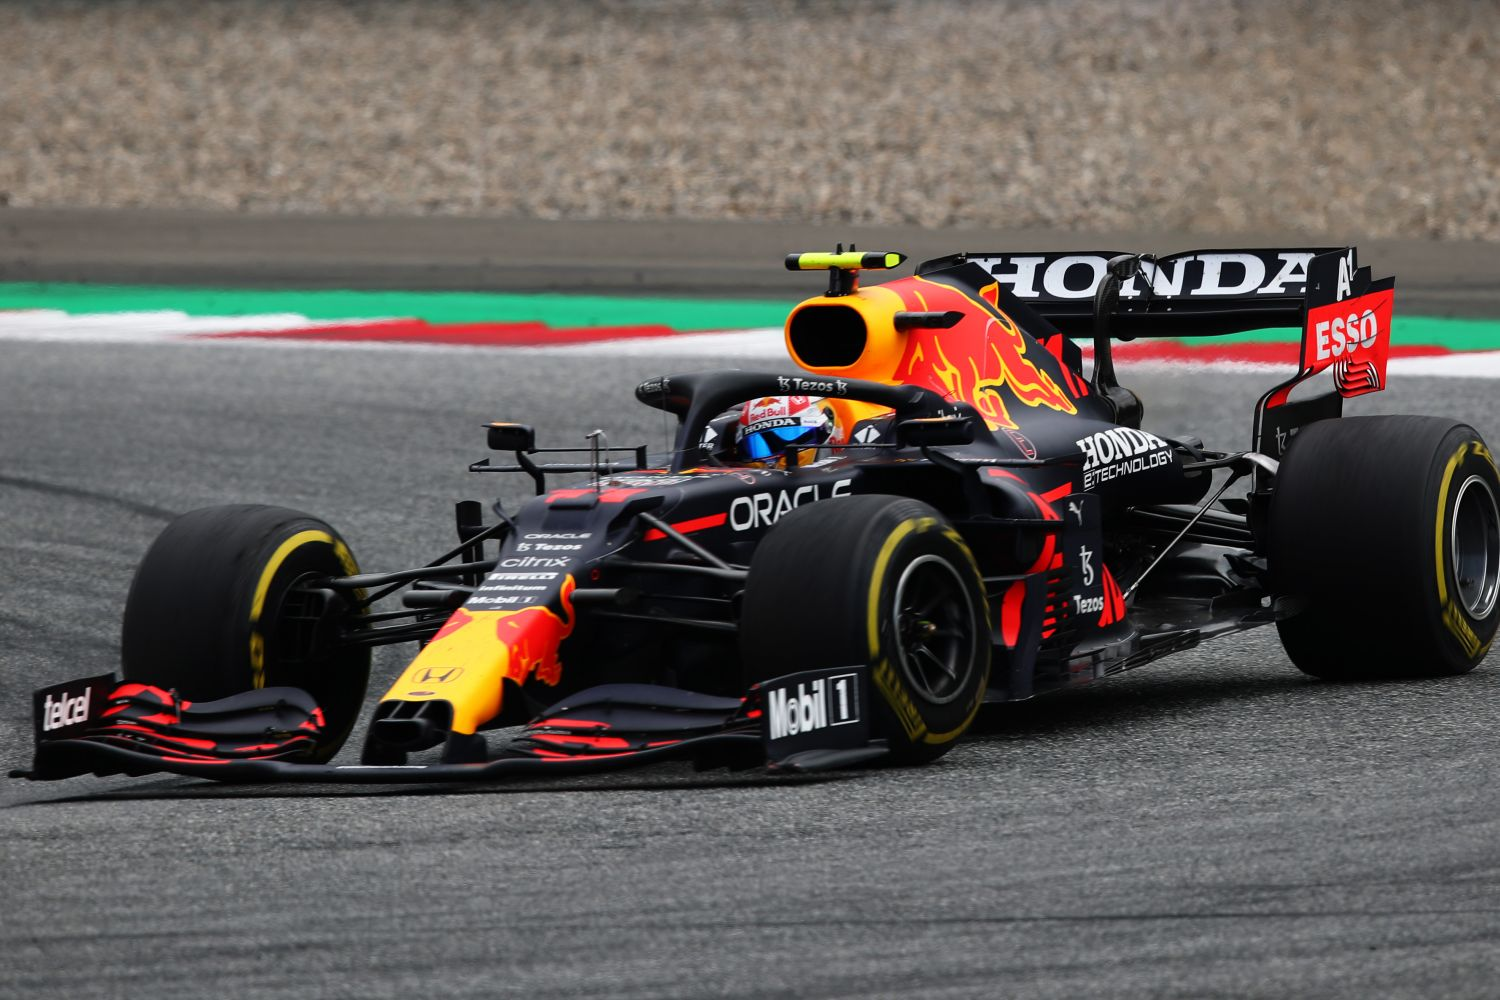 Red Bull toujours aussi performant l'an prochain ?